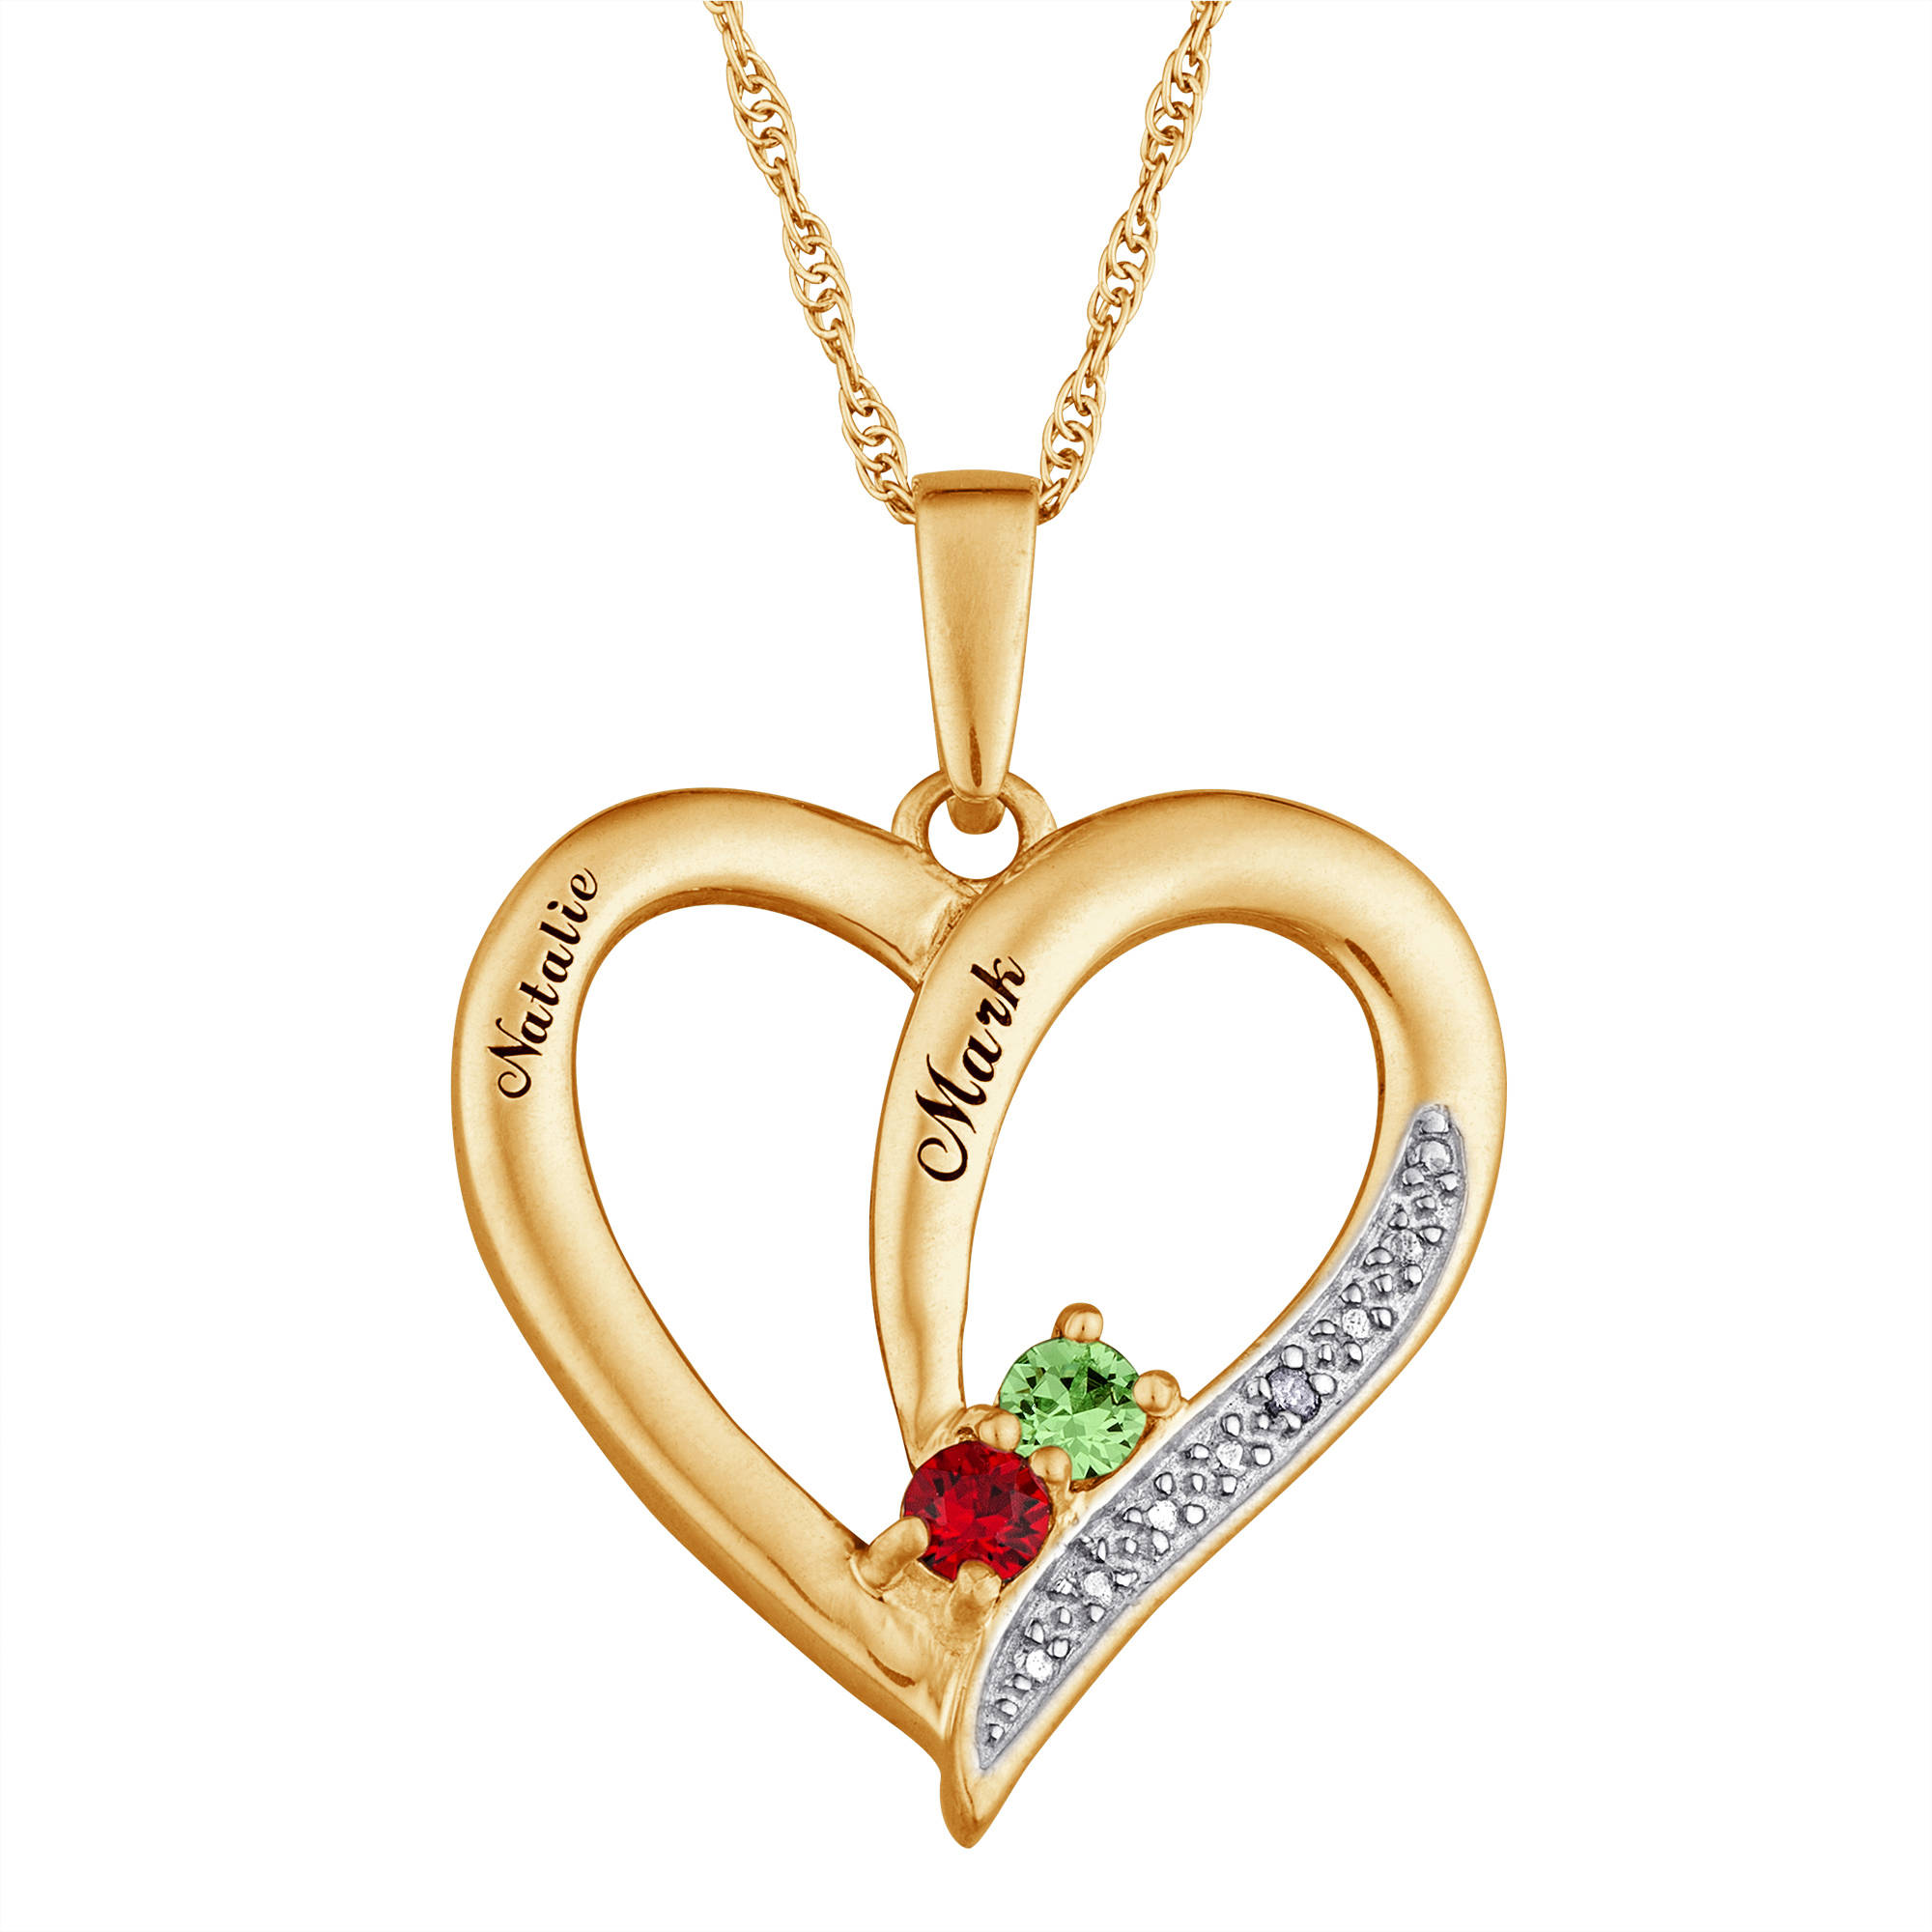 Personalized Couple's Diamond & Birthstone Heart Pendant, Sterling Silver or Sterling Silver w. 14K Gold Overlay